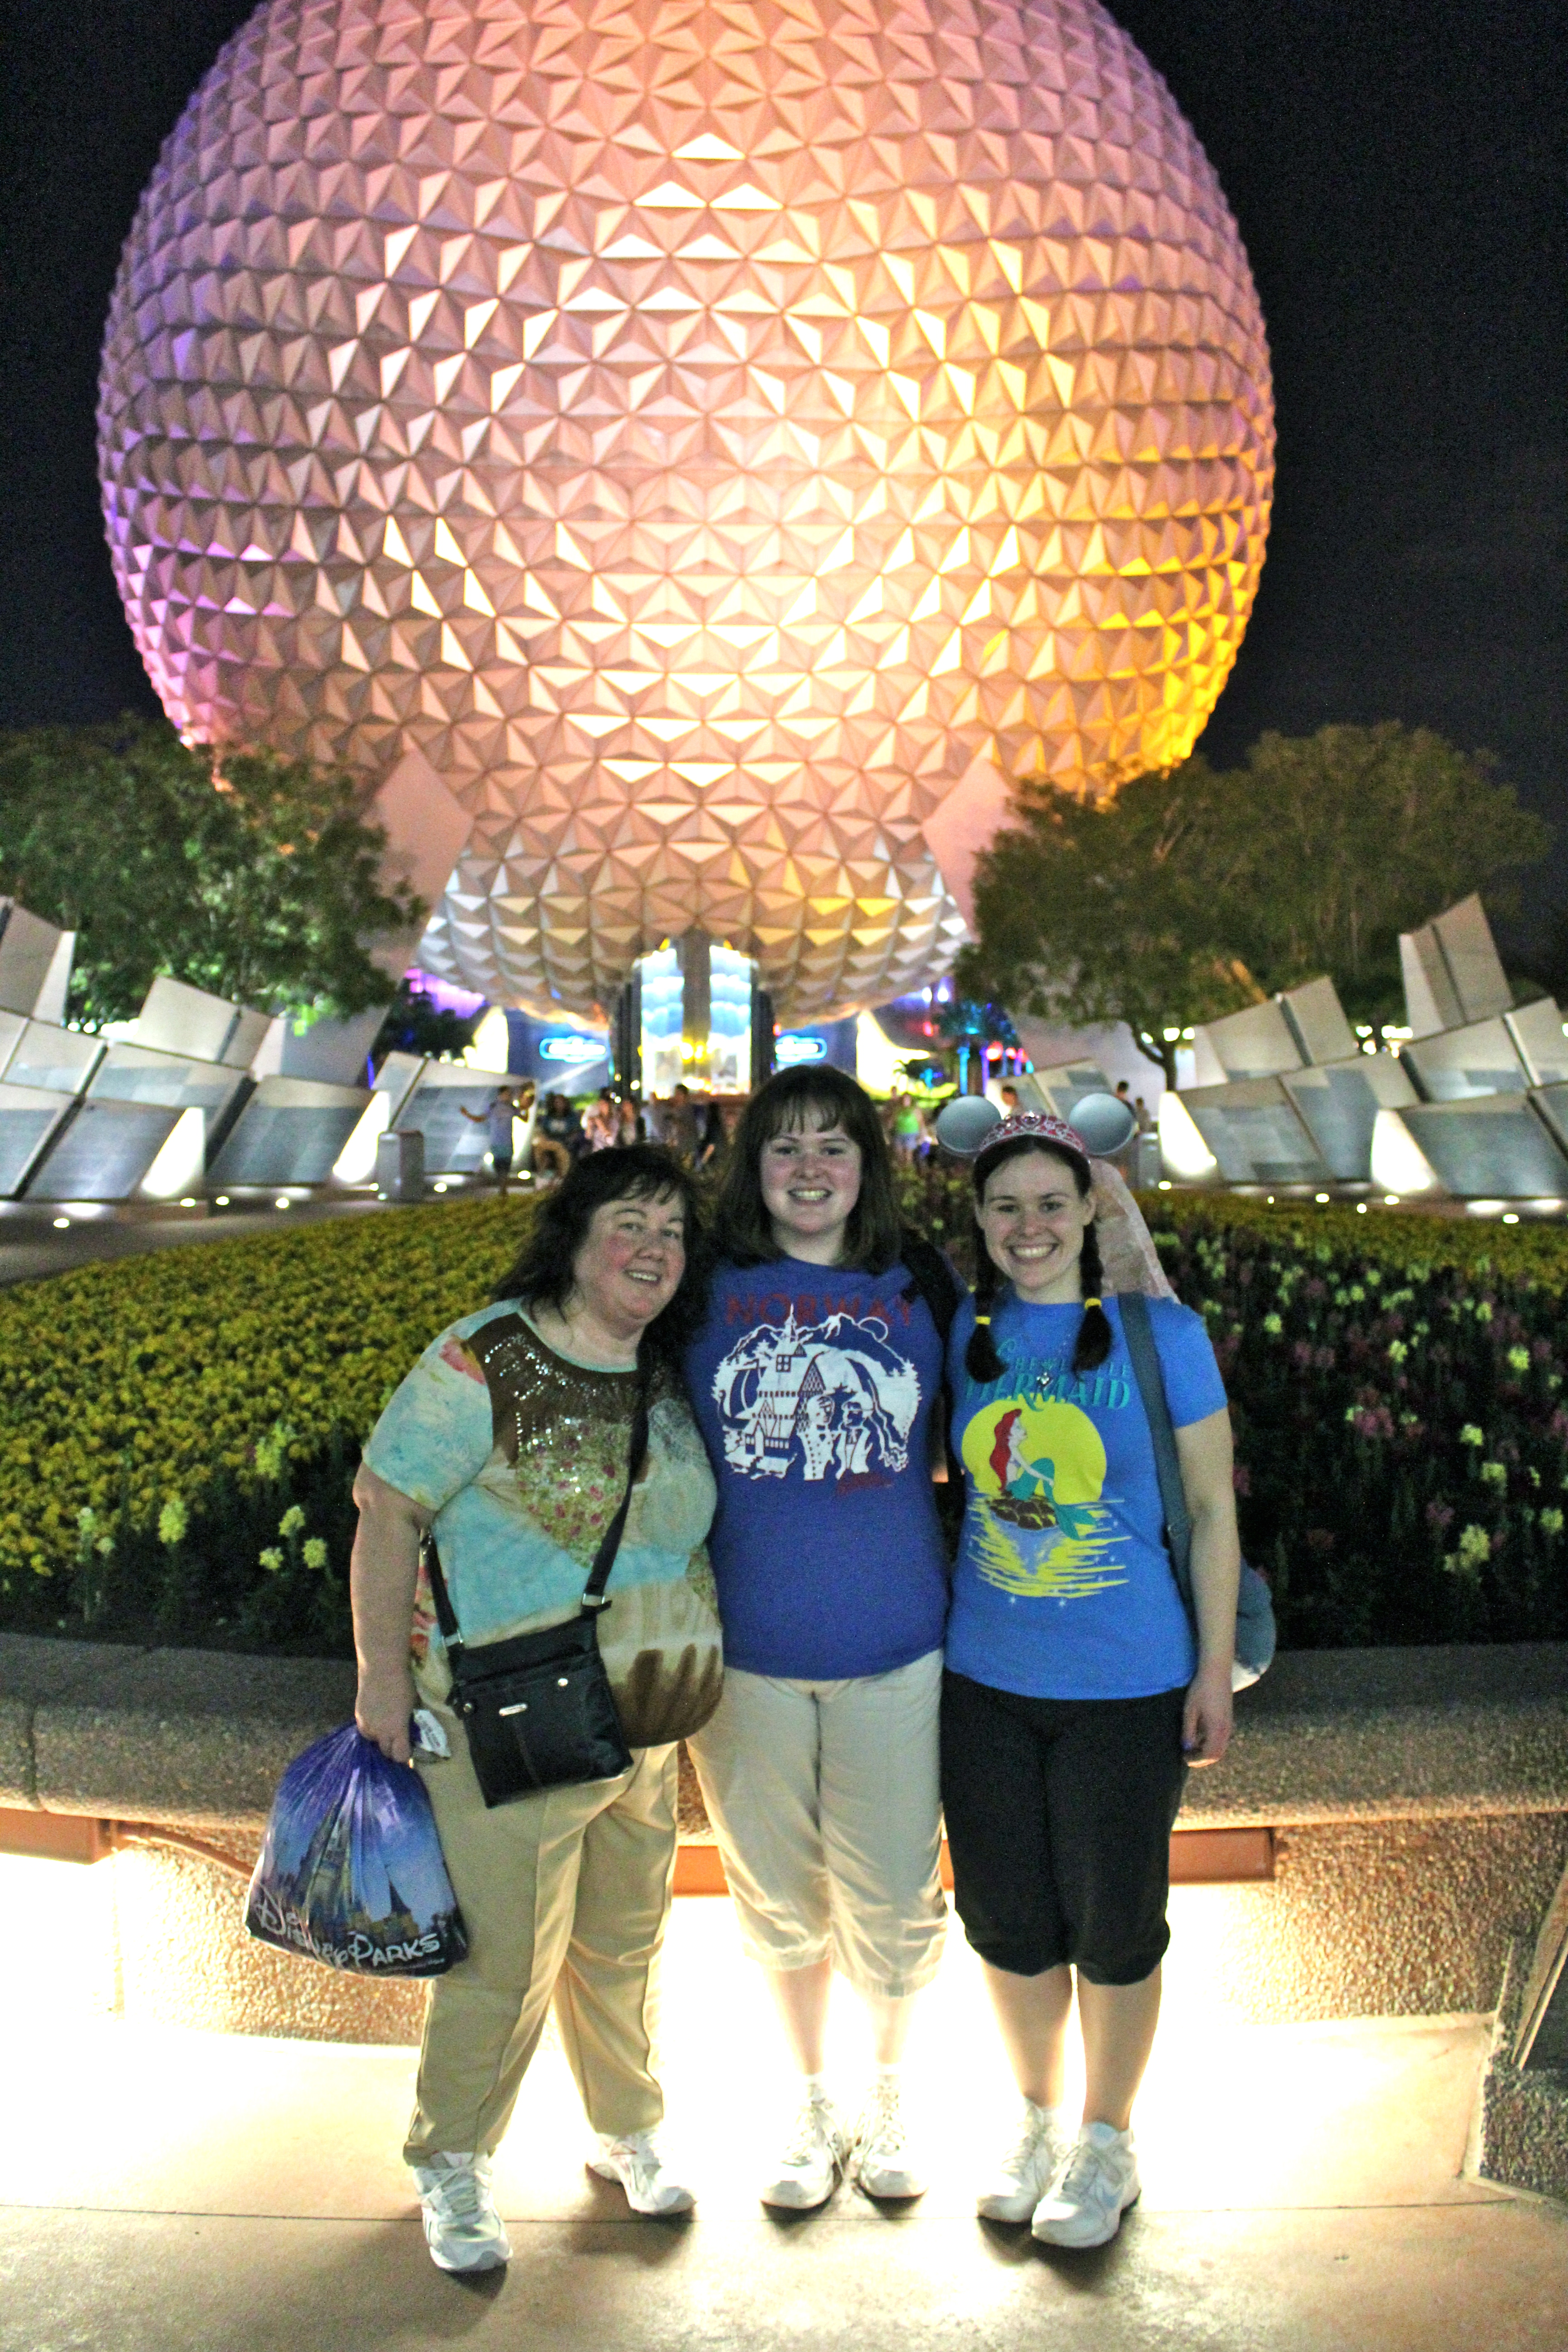 Our first night in Epcot!